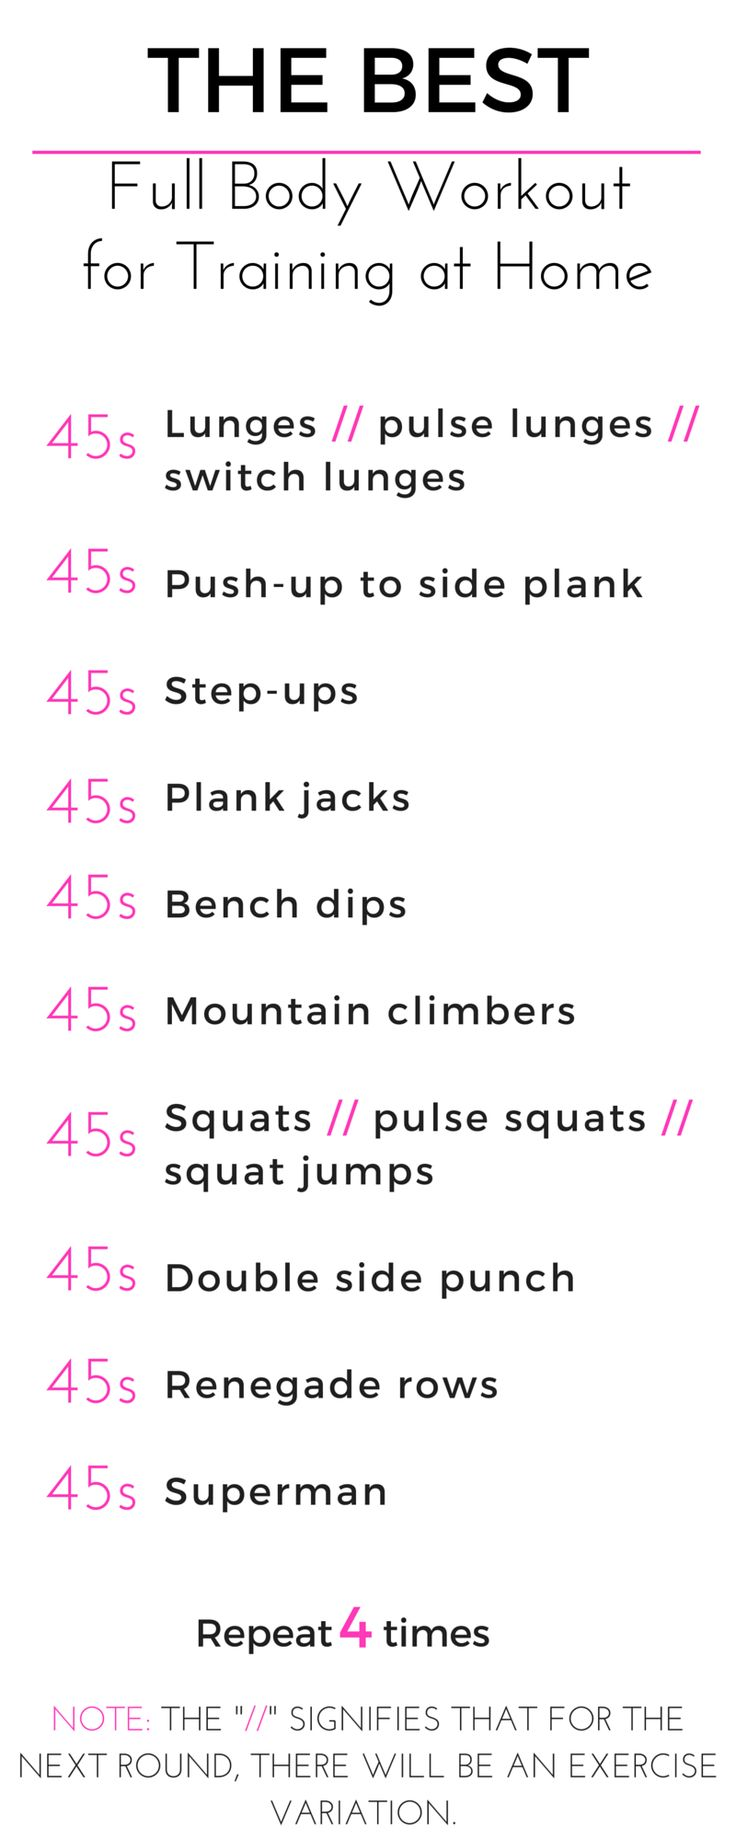 Best Circuit Workouts For Weight Loss Download Wiring Diagrams 10 Minute Cardio Workout Strength With Step Ups Builtlean Im Genes De Full Body Exercises Rh Galla Seelenfluegel Info Training Program